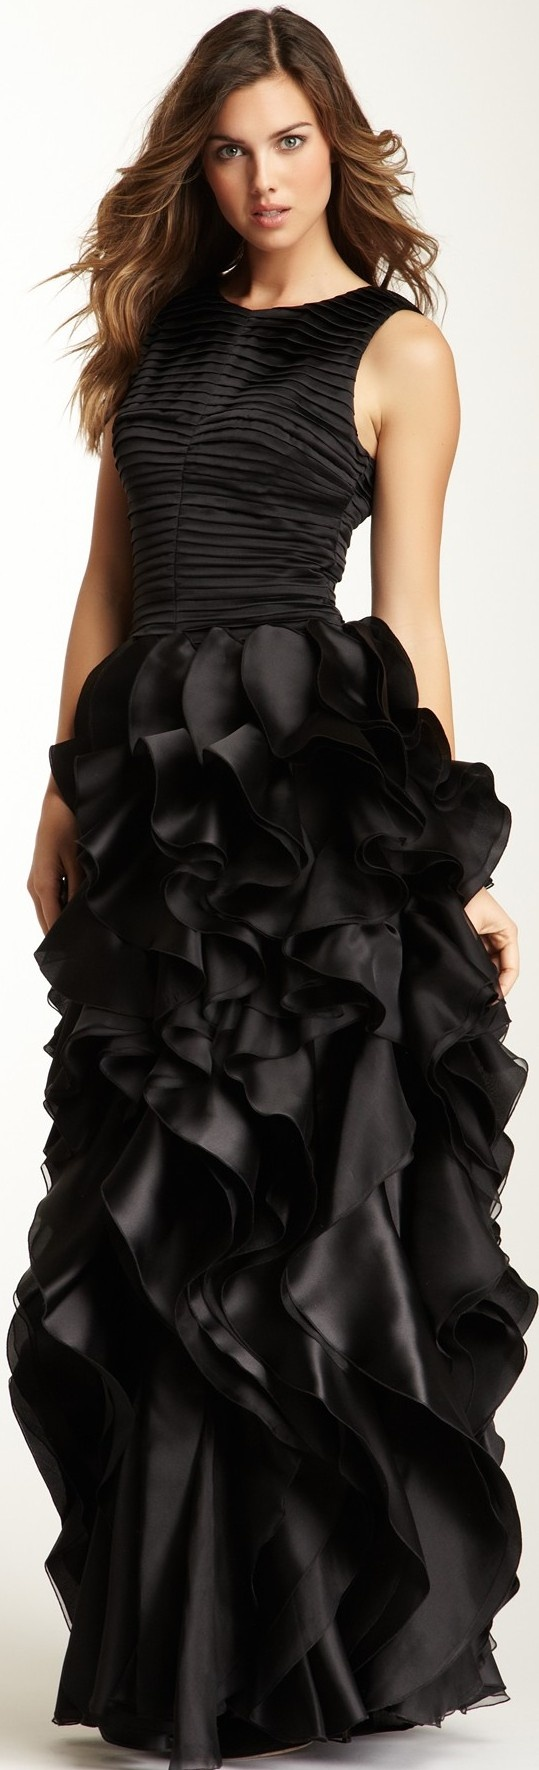 Halston Heritage Pleated Bodice Ruffle Gown | The House of Beccaria